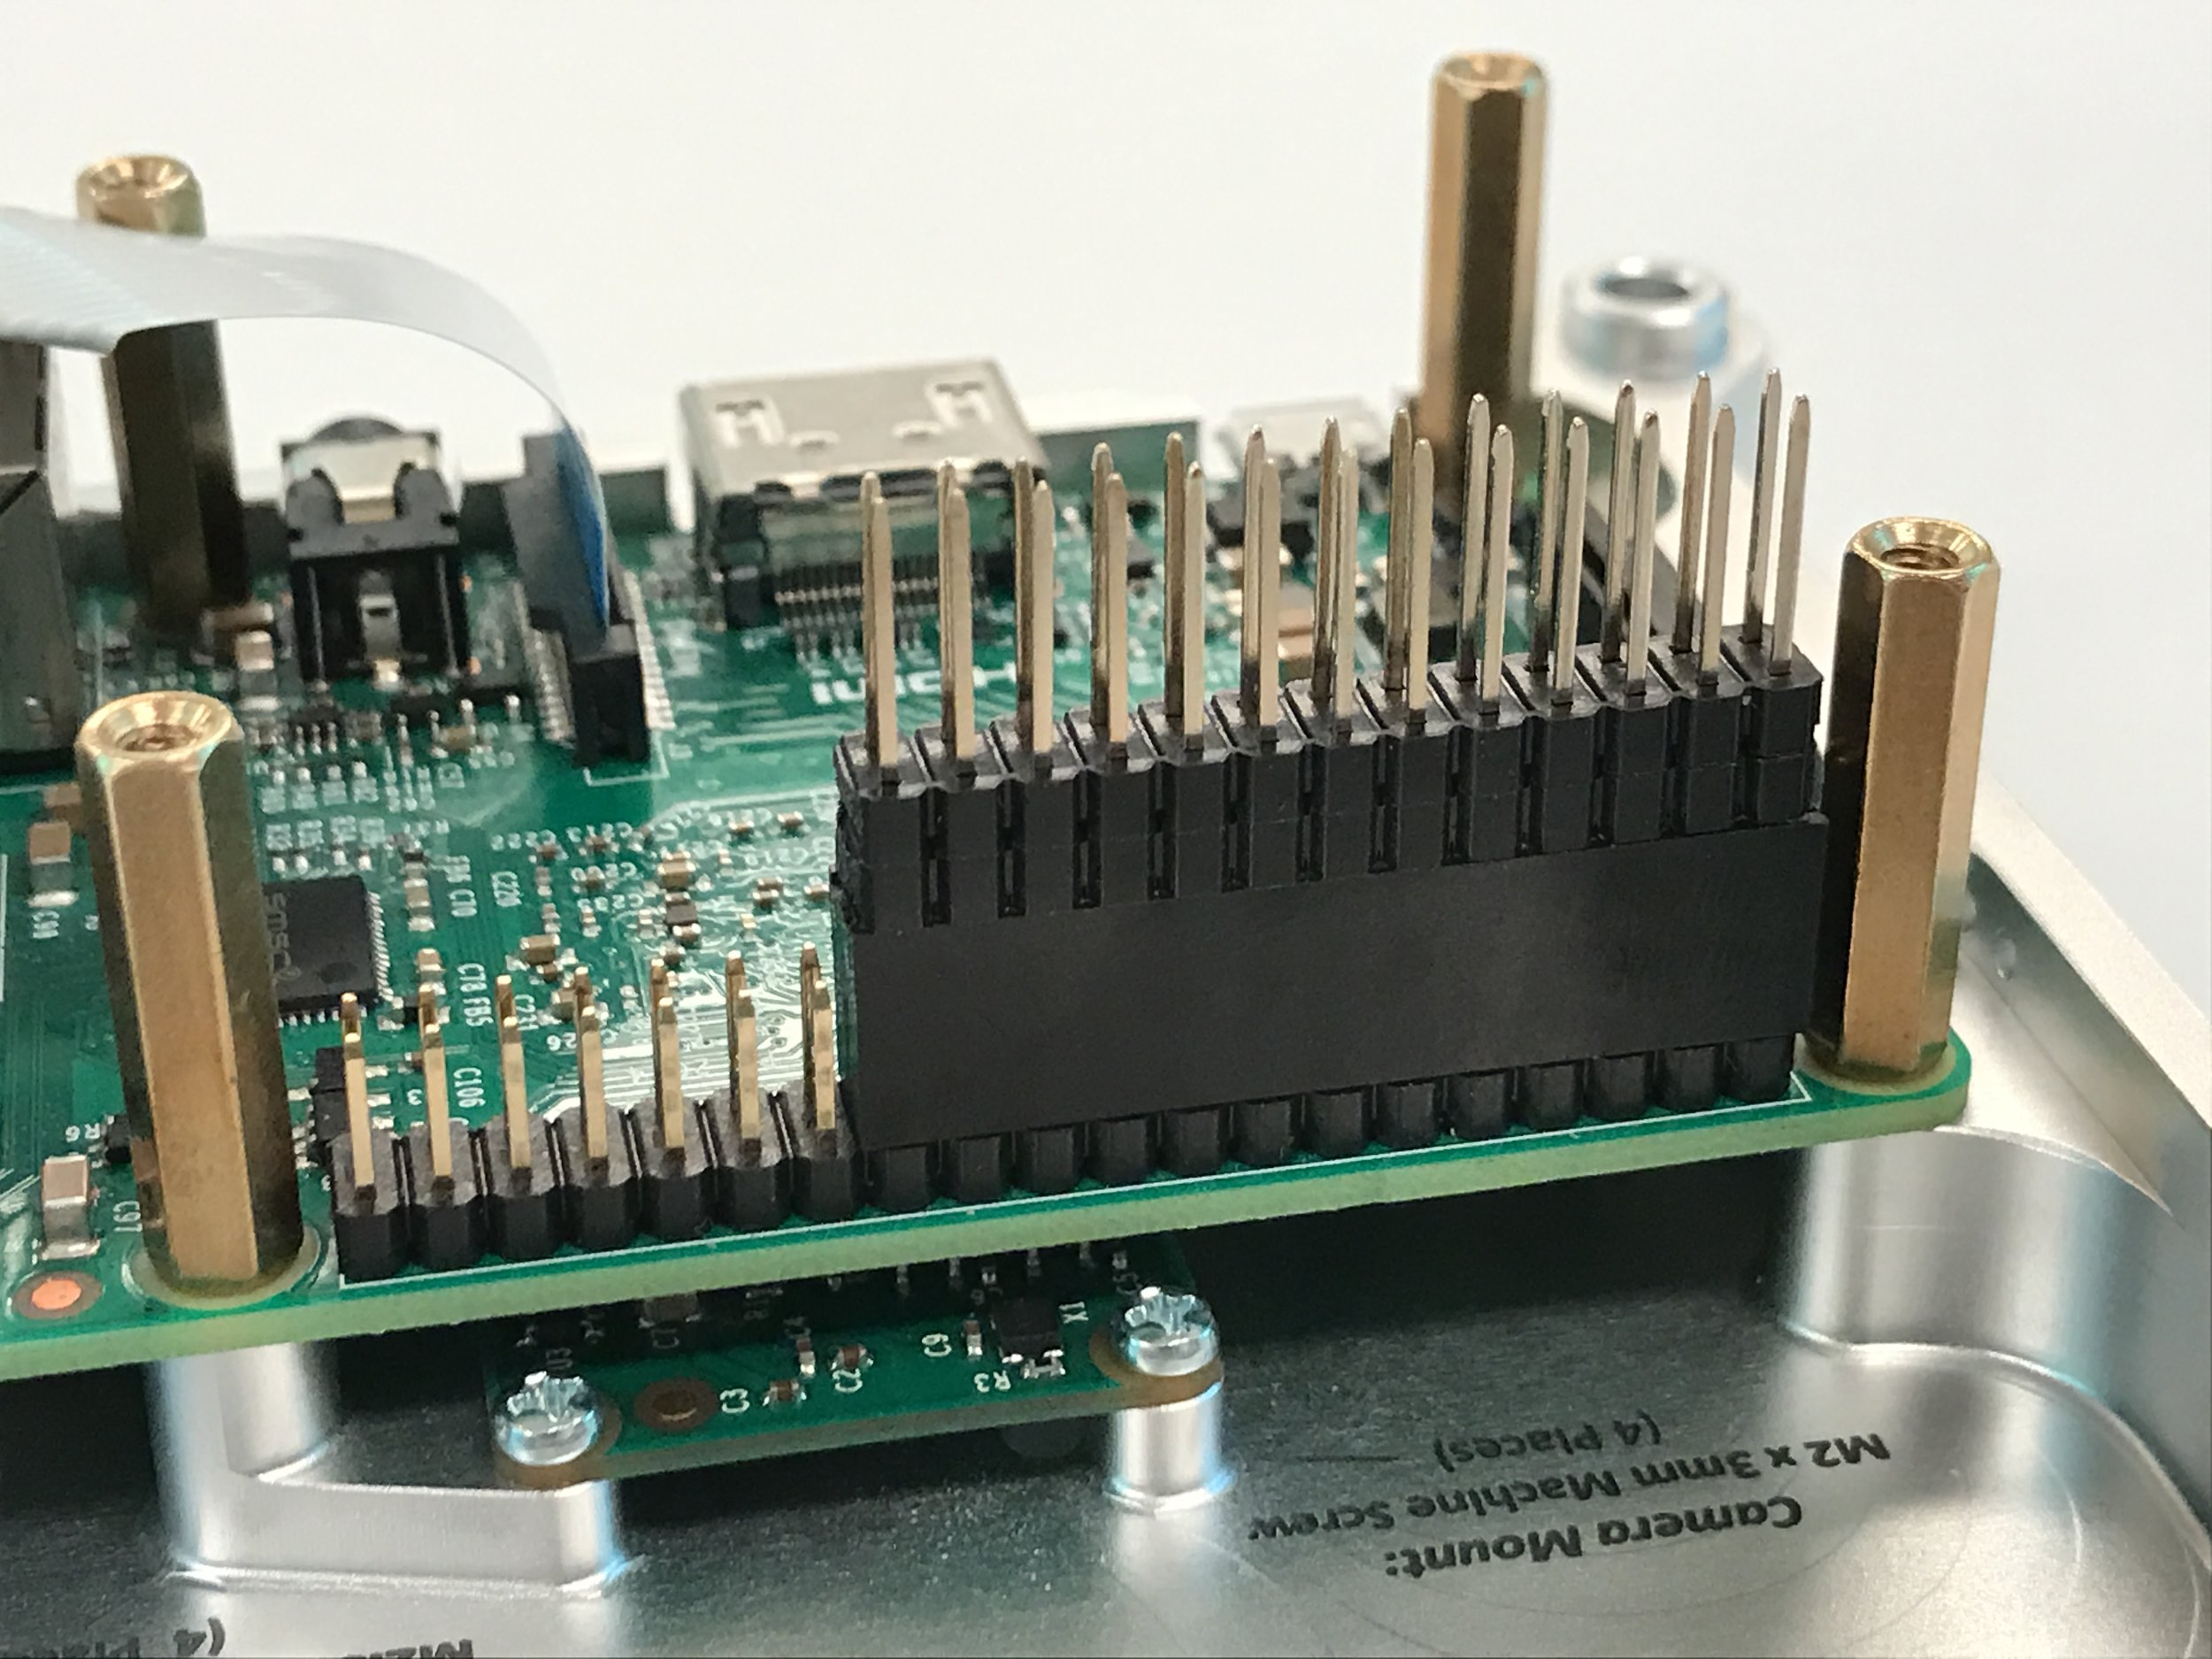 - Add the extended 2X13 pin (26-way) header to the Raspberry Pi GPIO pins, on the side opposite from the USB ports.Make sure to push down firmly and seat the header all the way down onto the GPIO base.Now go to Step 3: Install Push-Button Switches